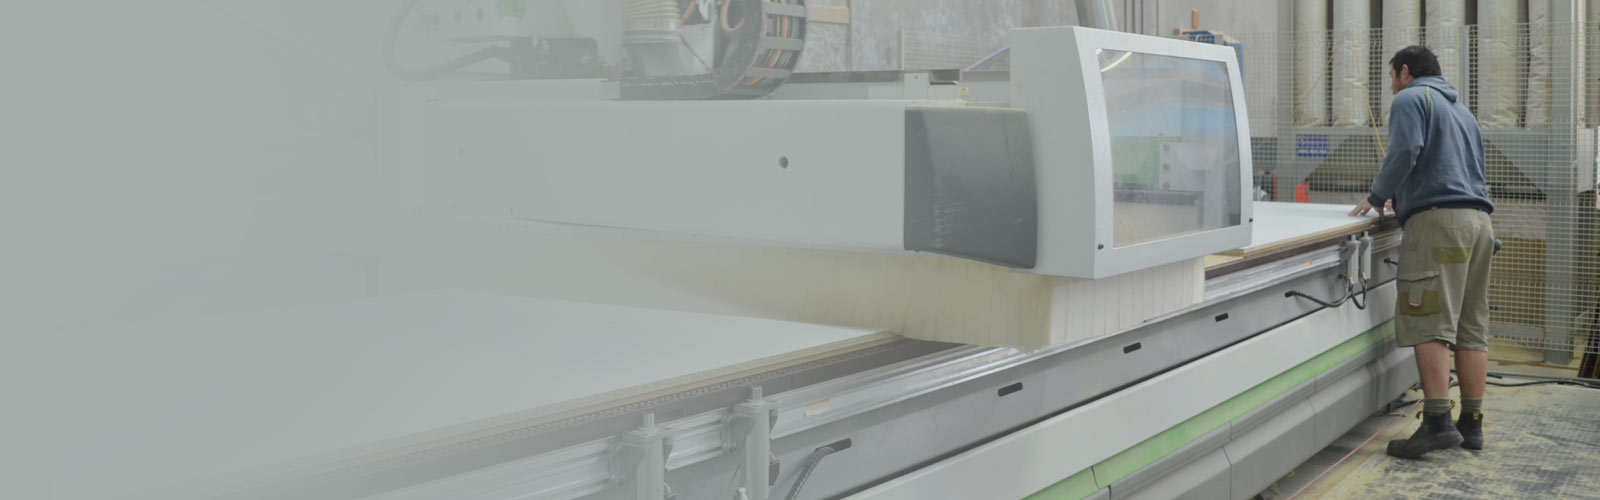 CNC MAchine Software